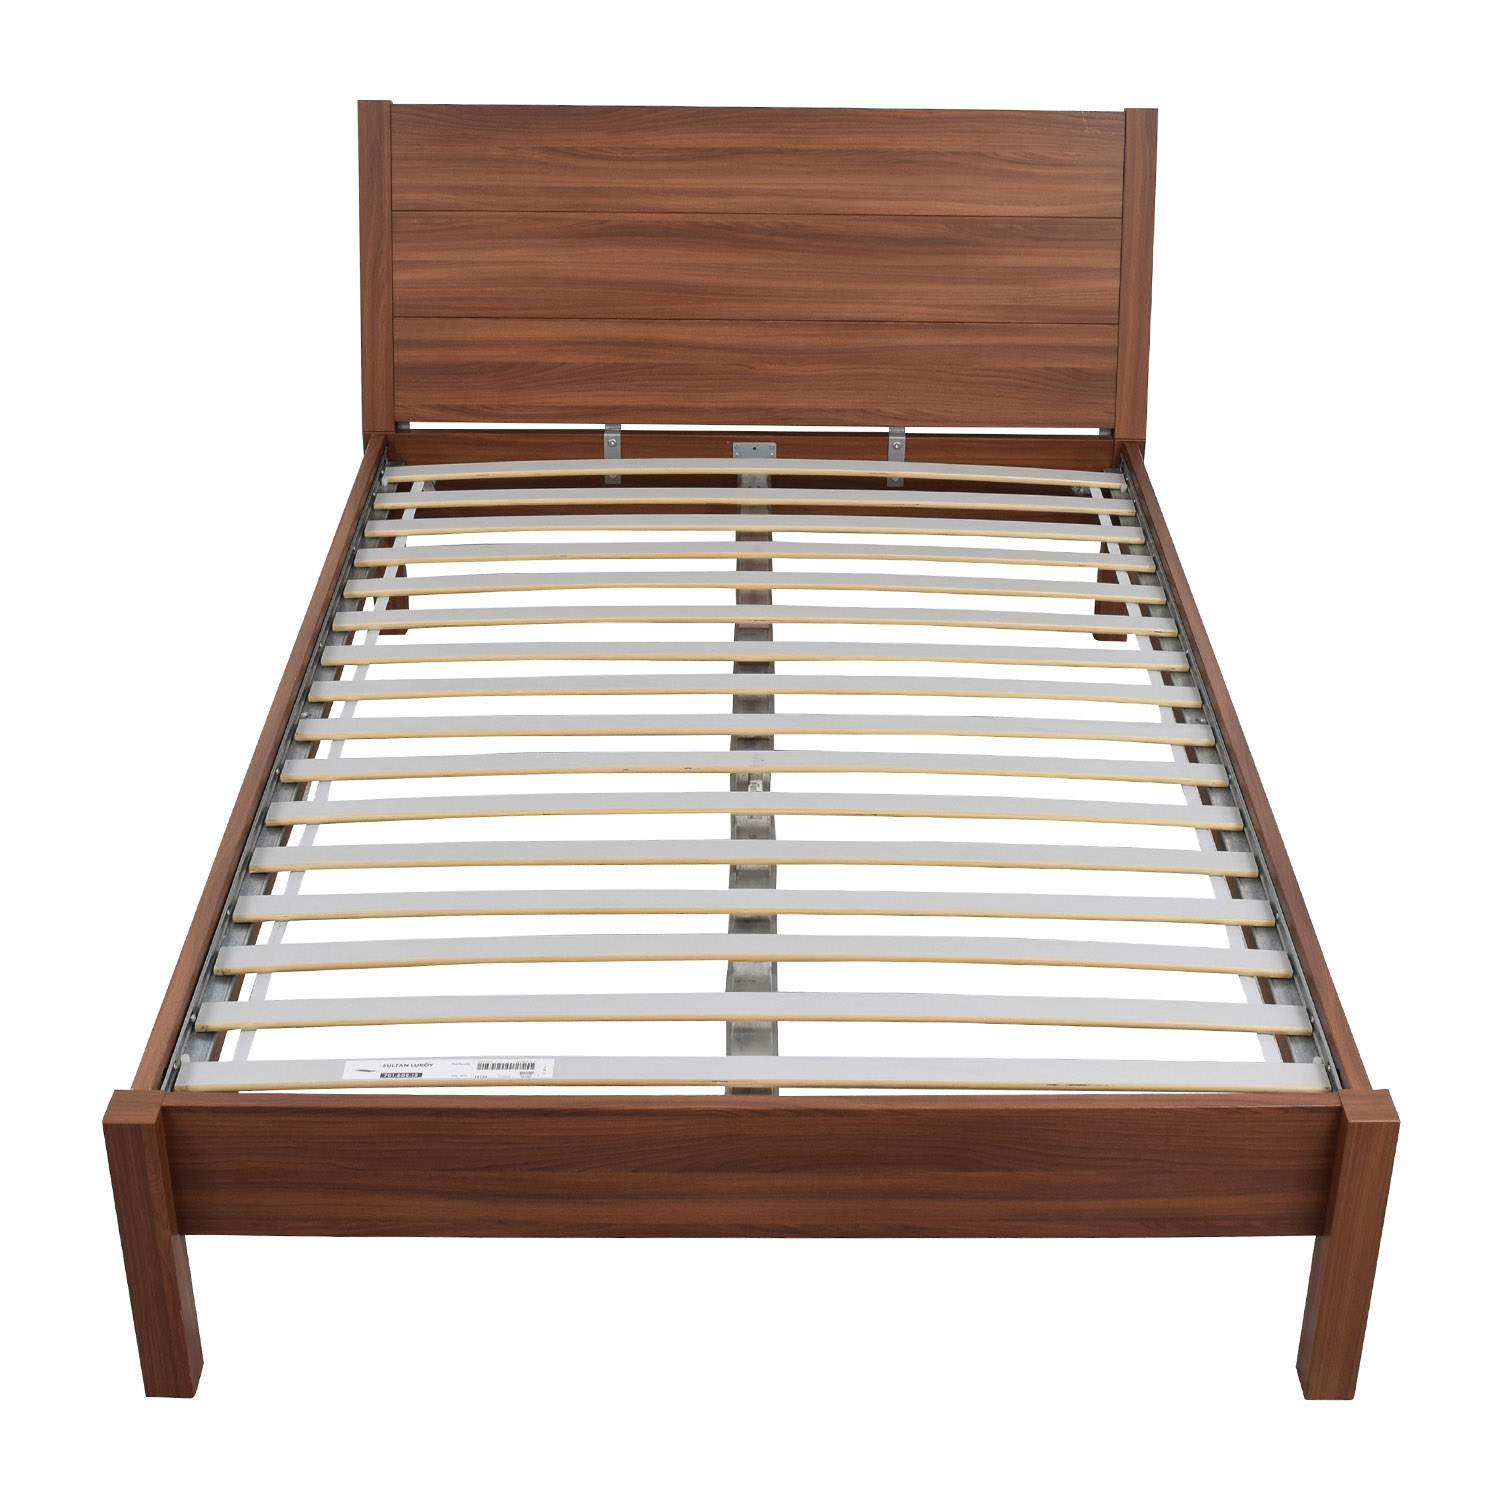 Beds used beds for sale - Ikea wood futon frame ...